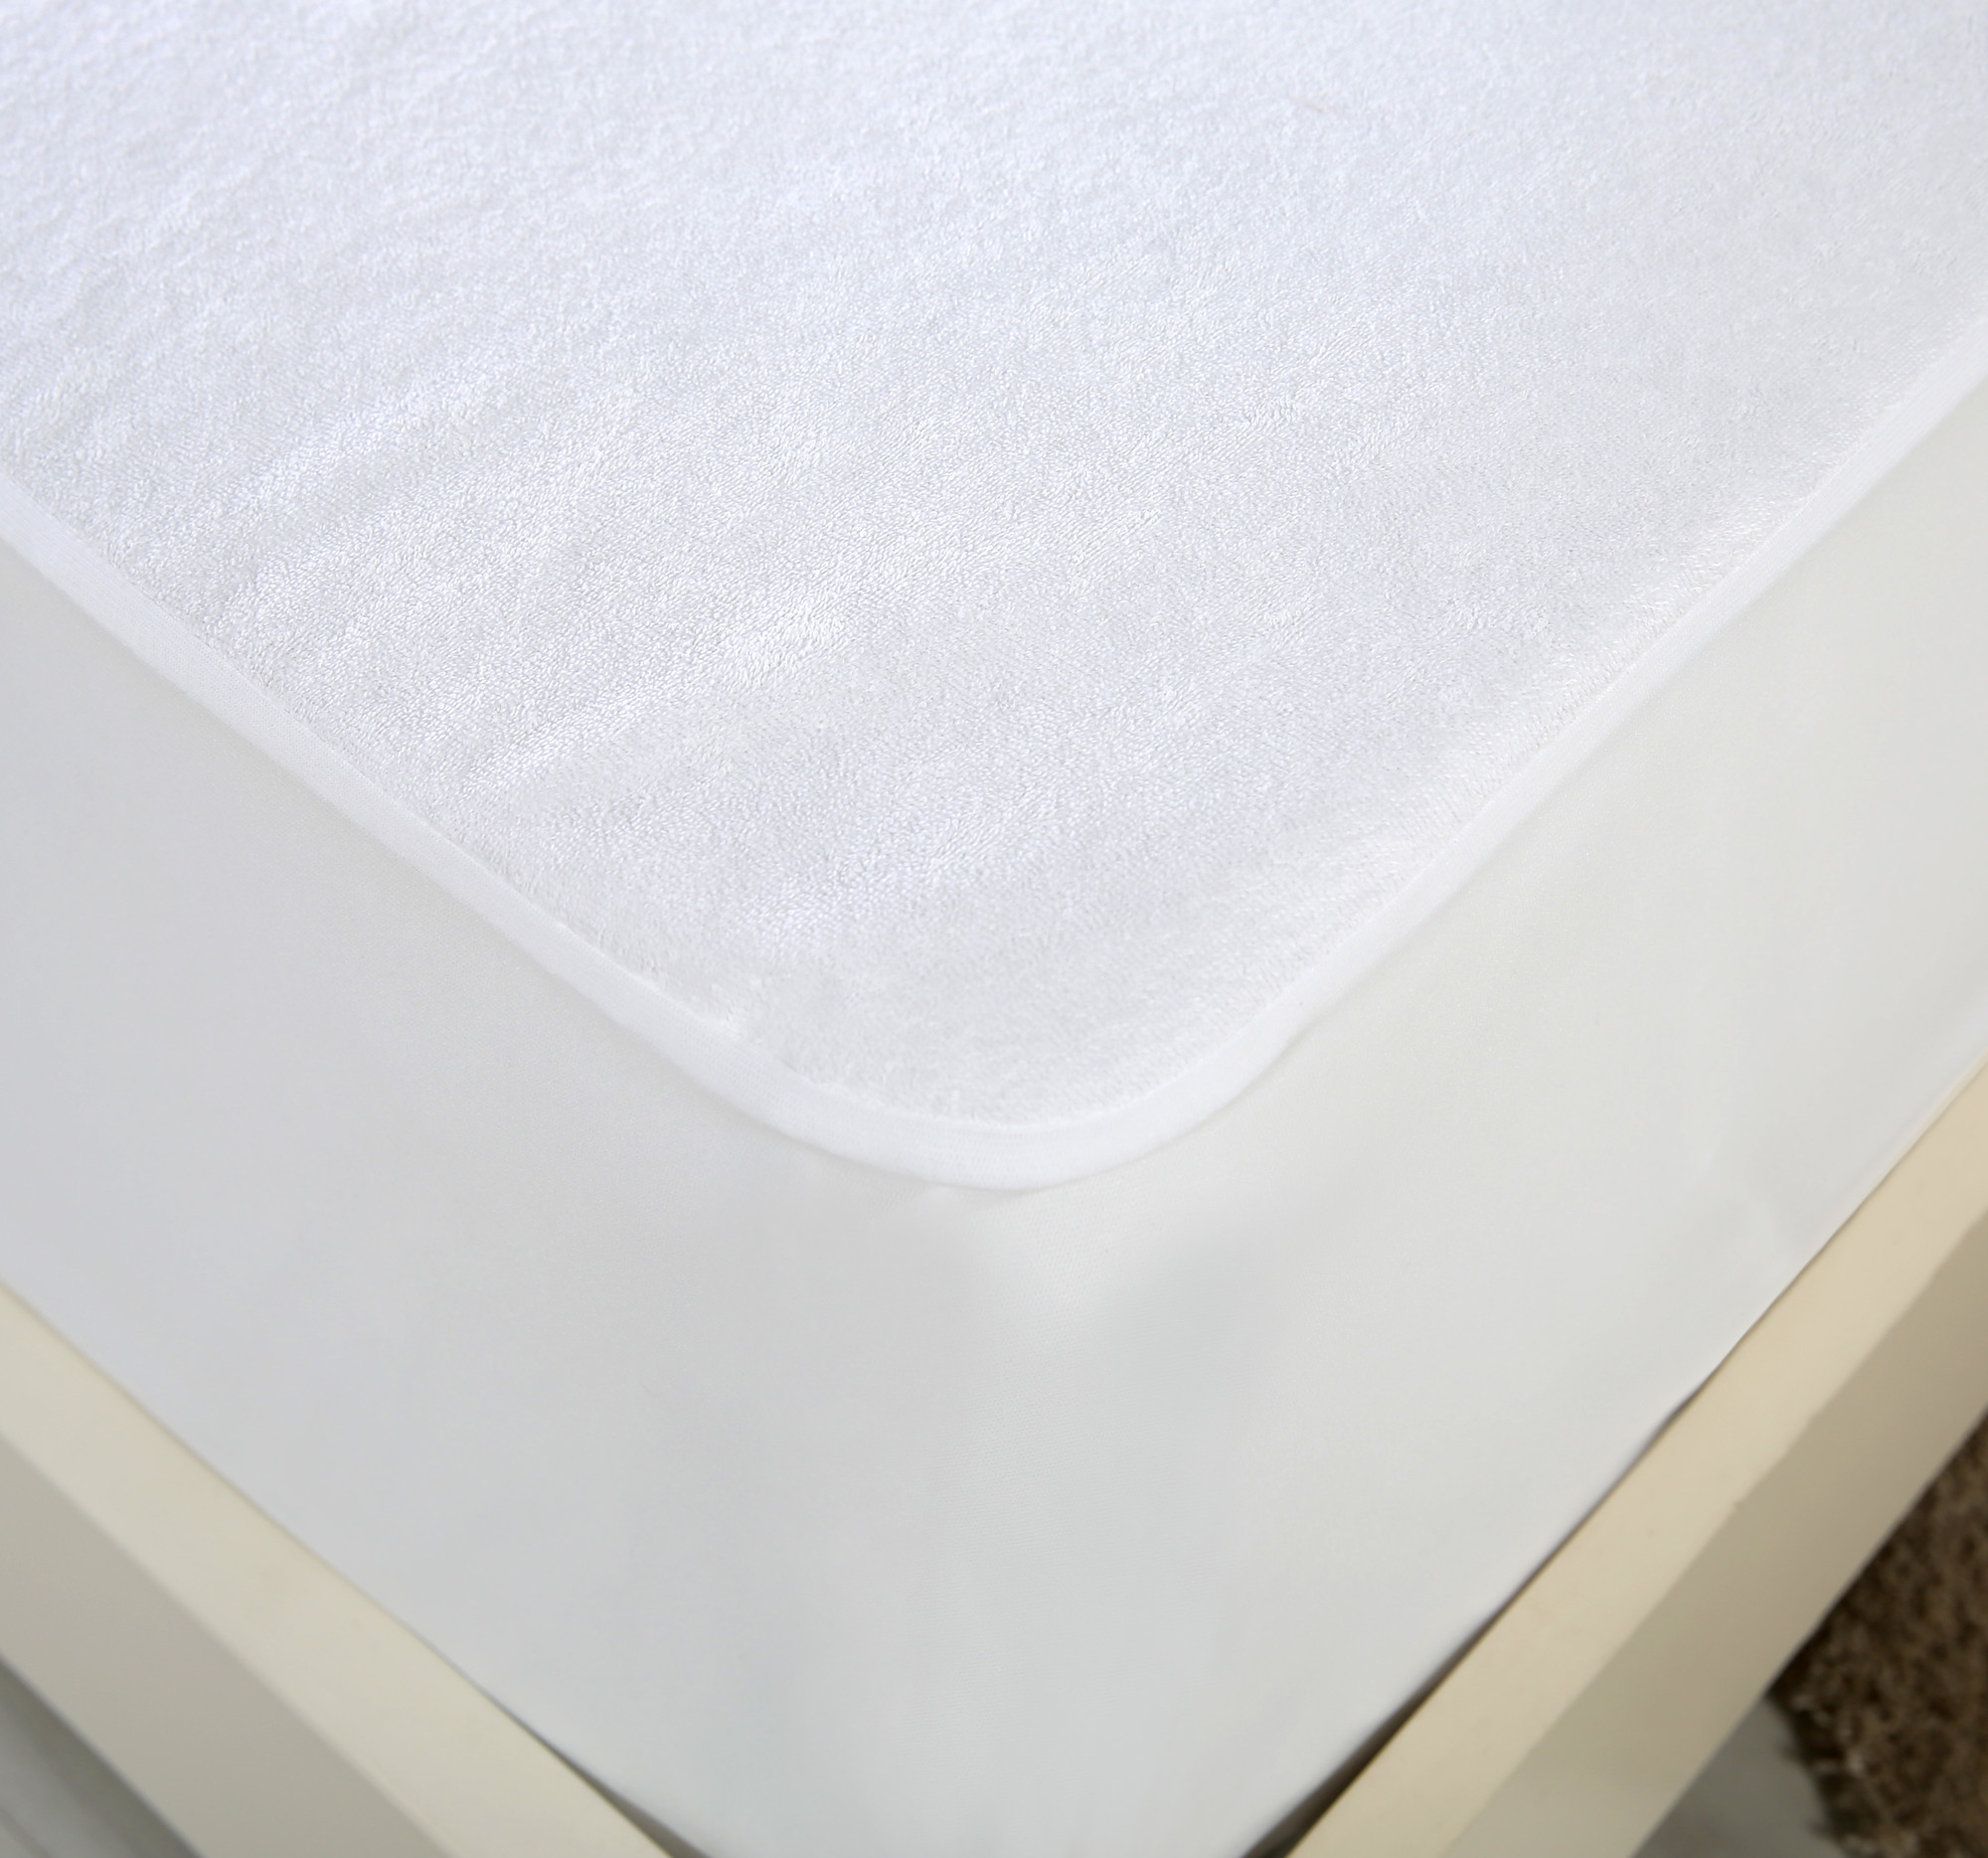 protector classic shop antrim towelling with terry waterproof mattress protection